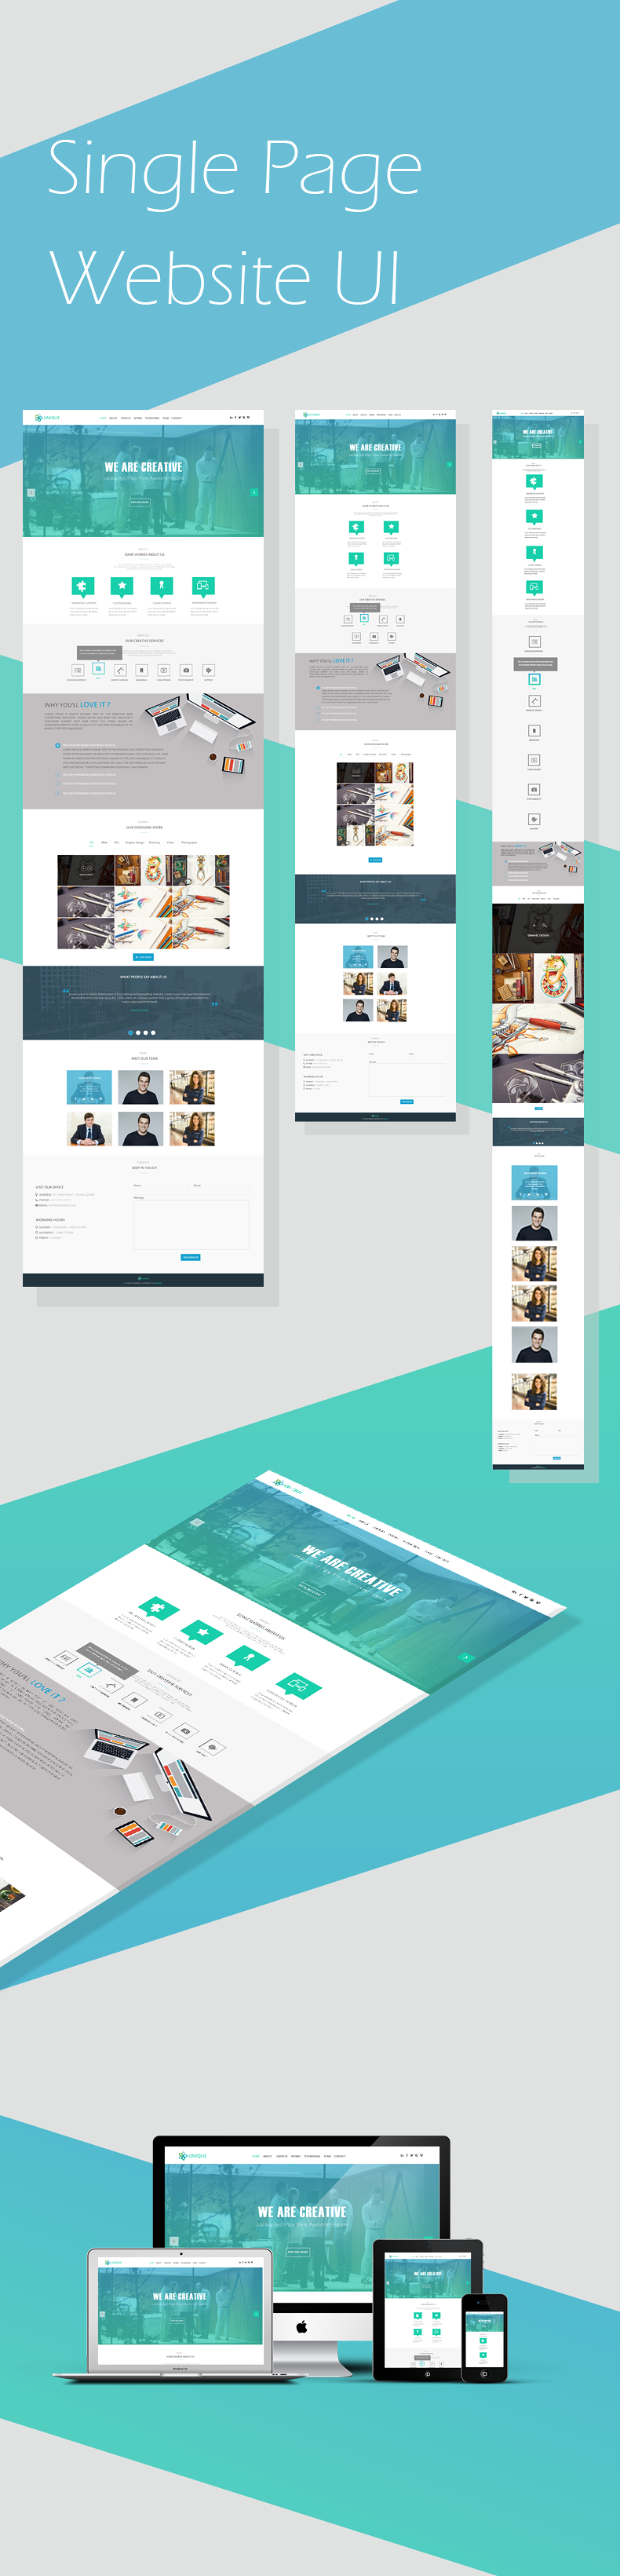 Single Page Responsive Web Design